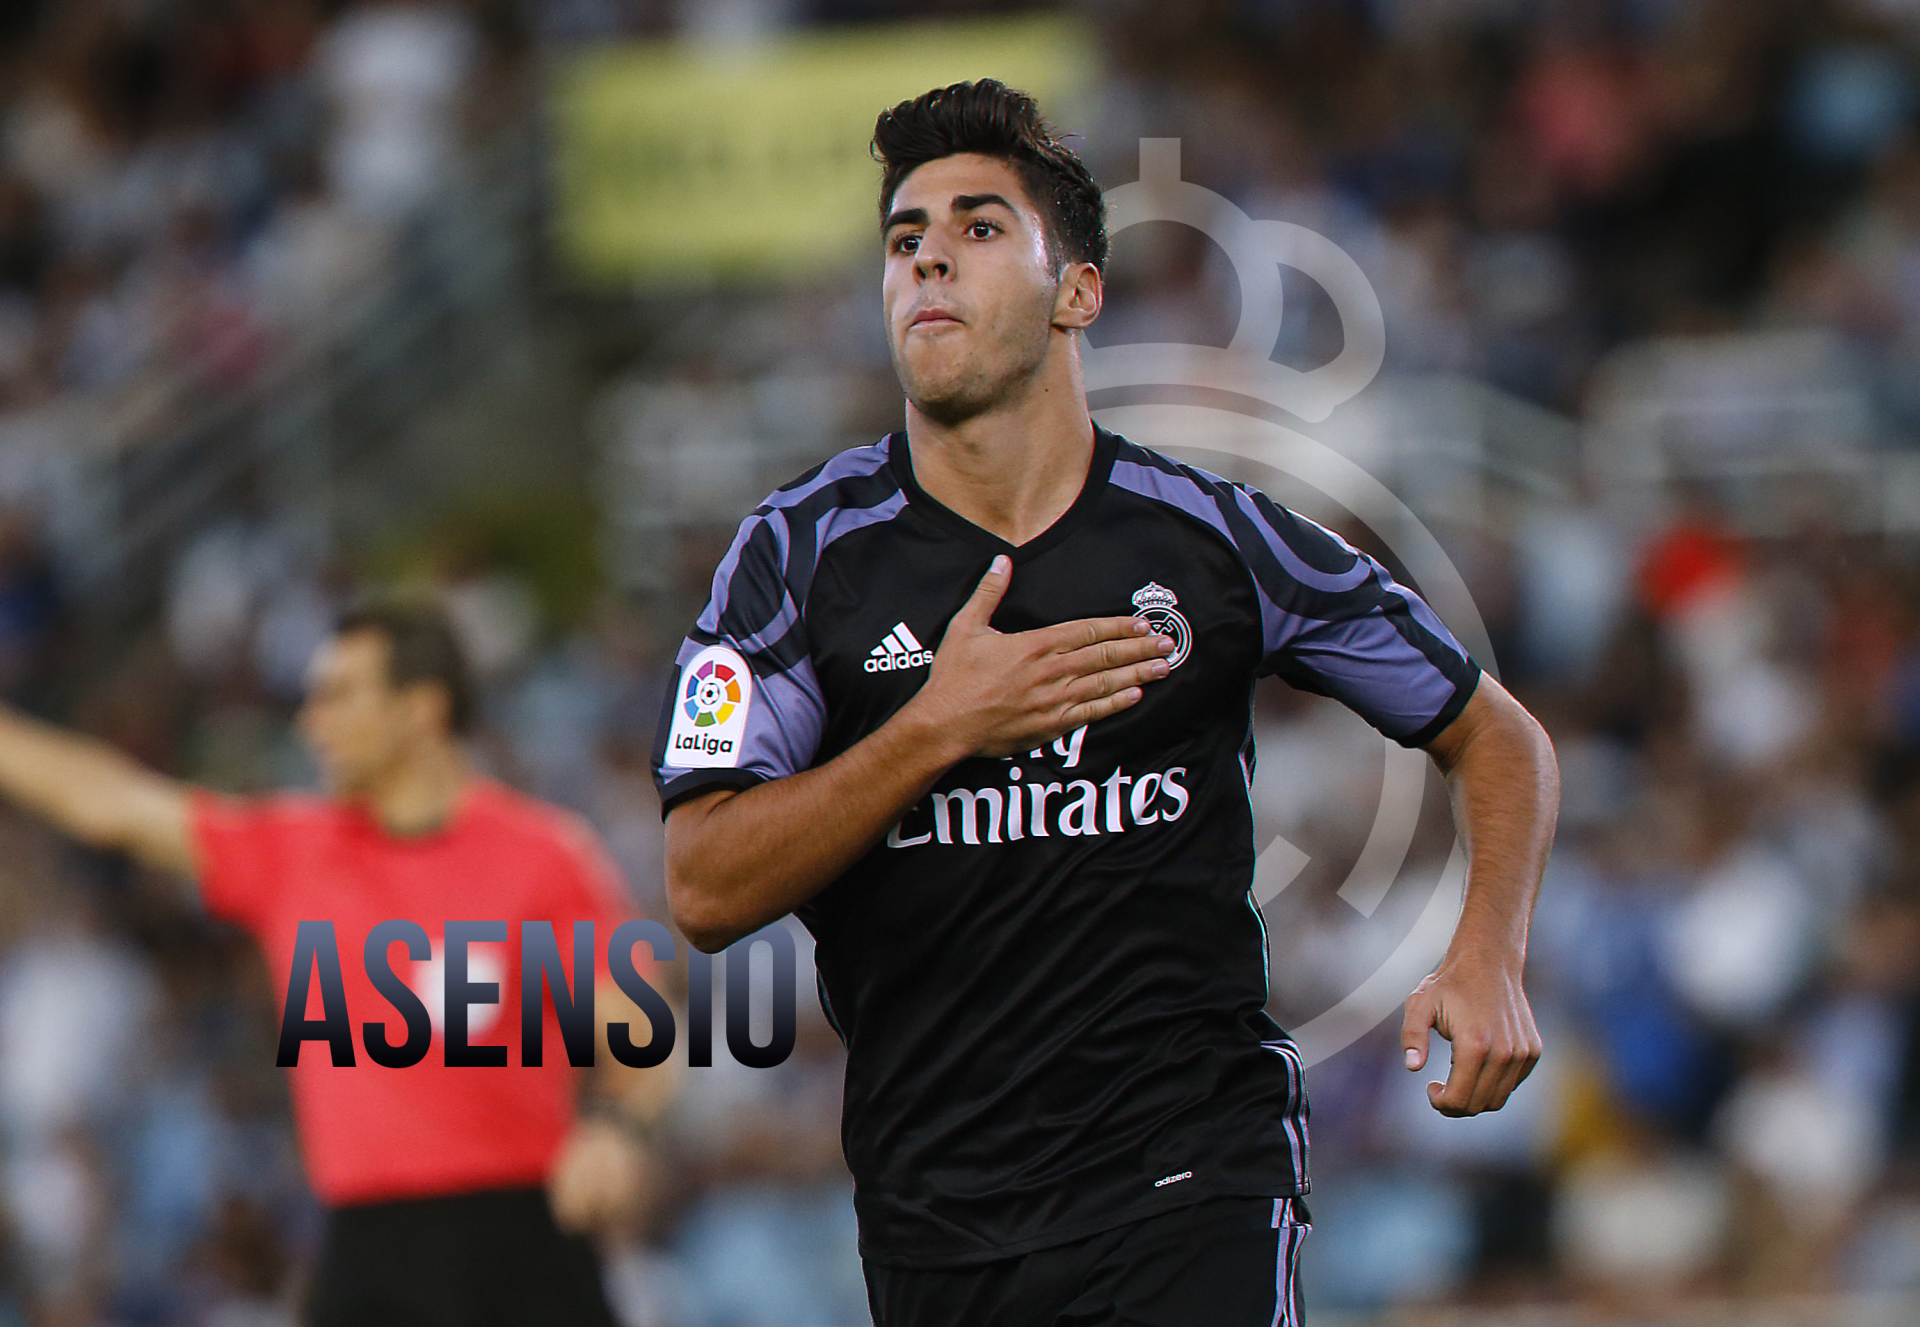 Marco Asensio HD Wallpaper | Background Image | 2760x1908 ...